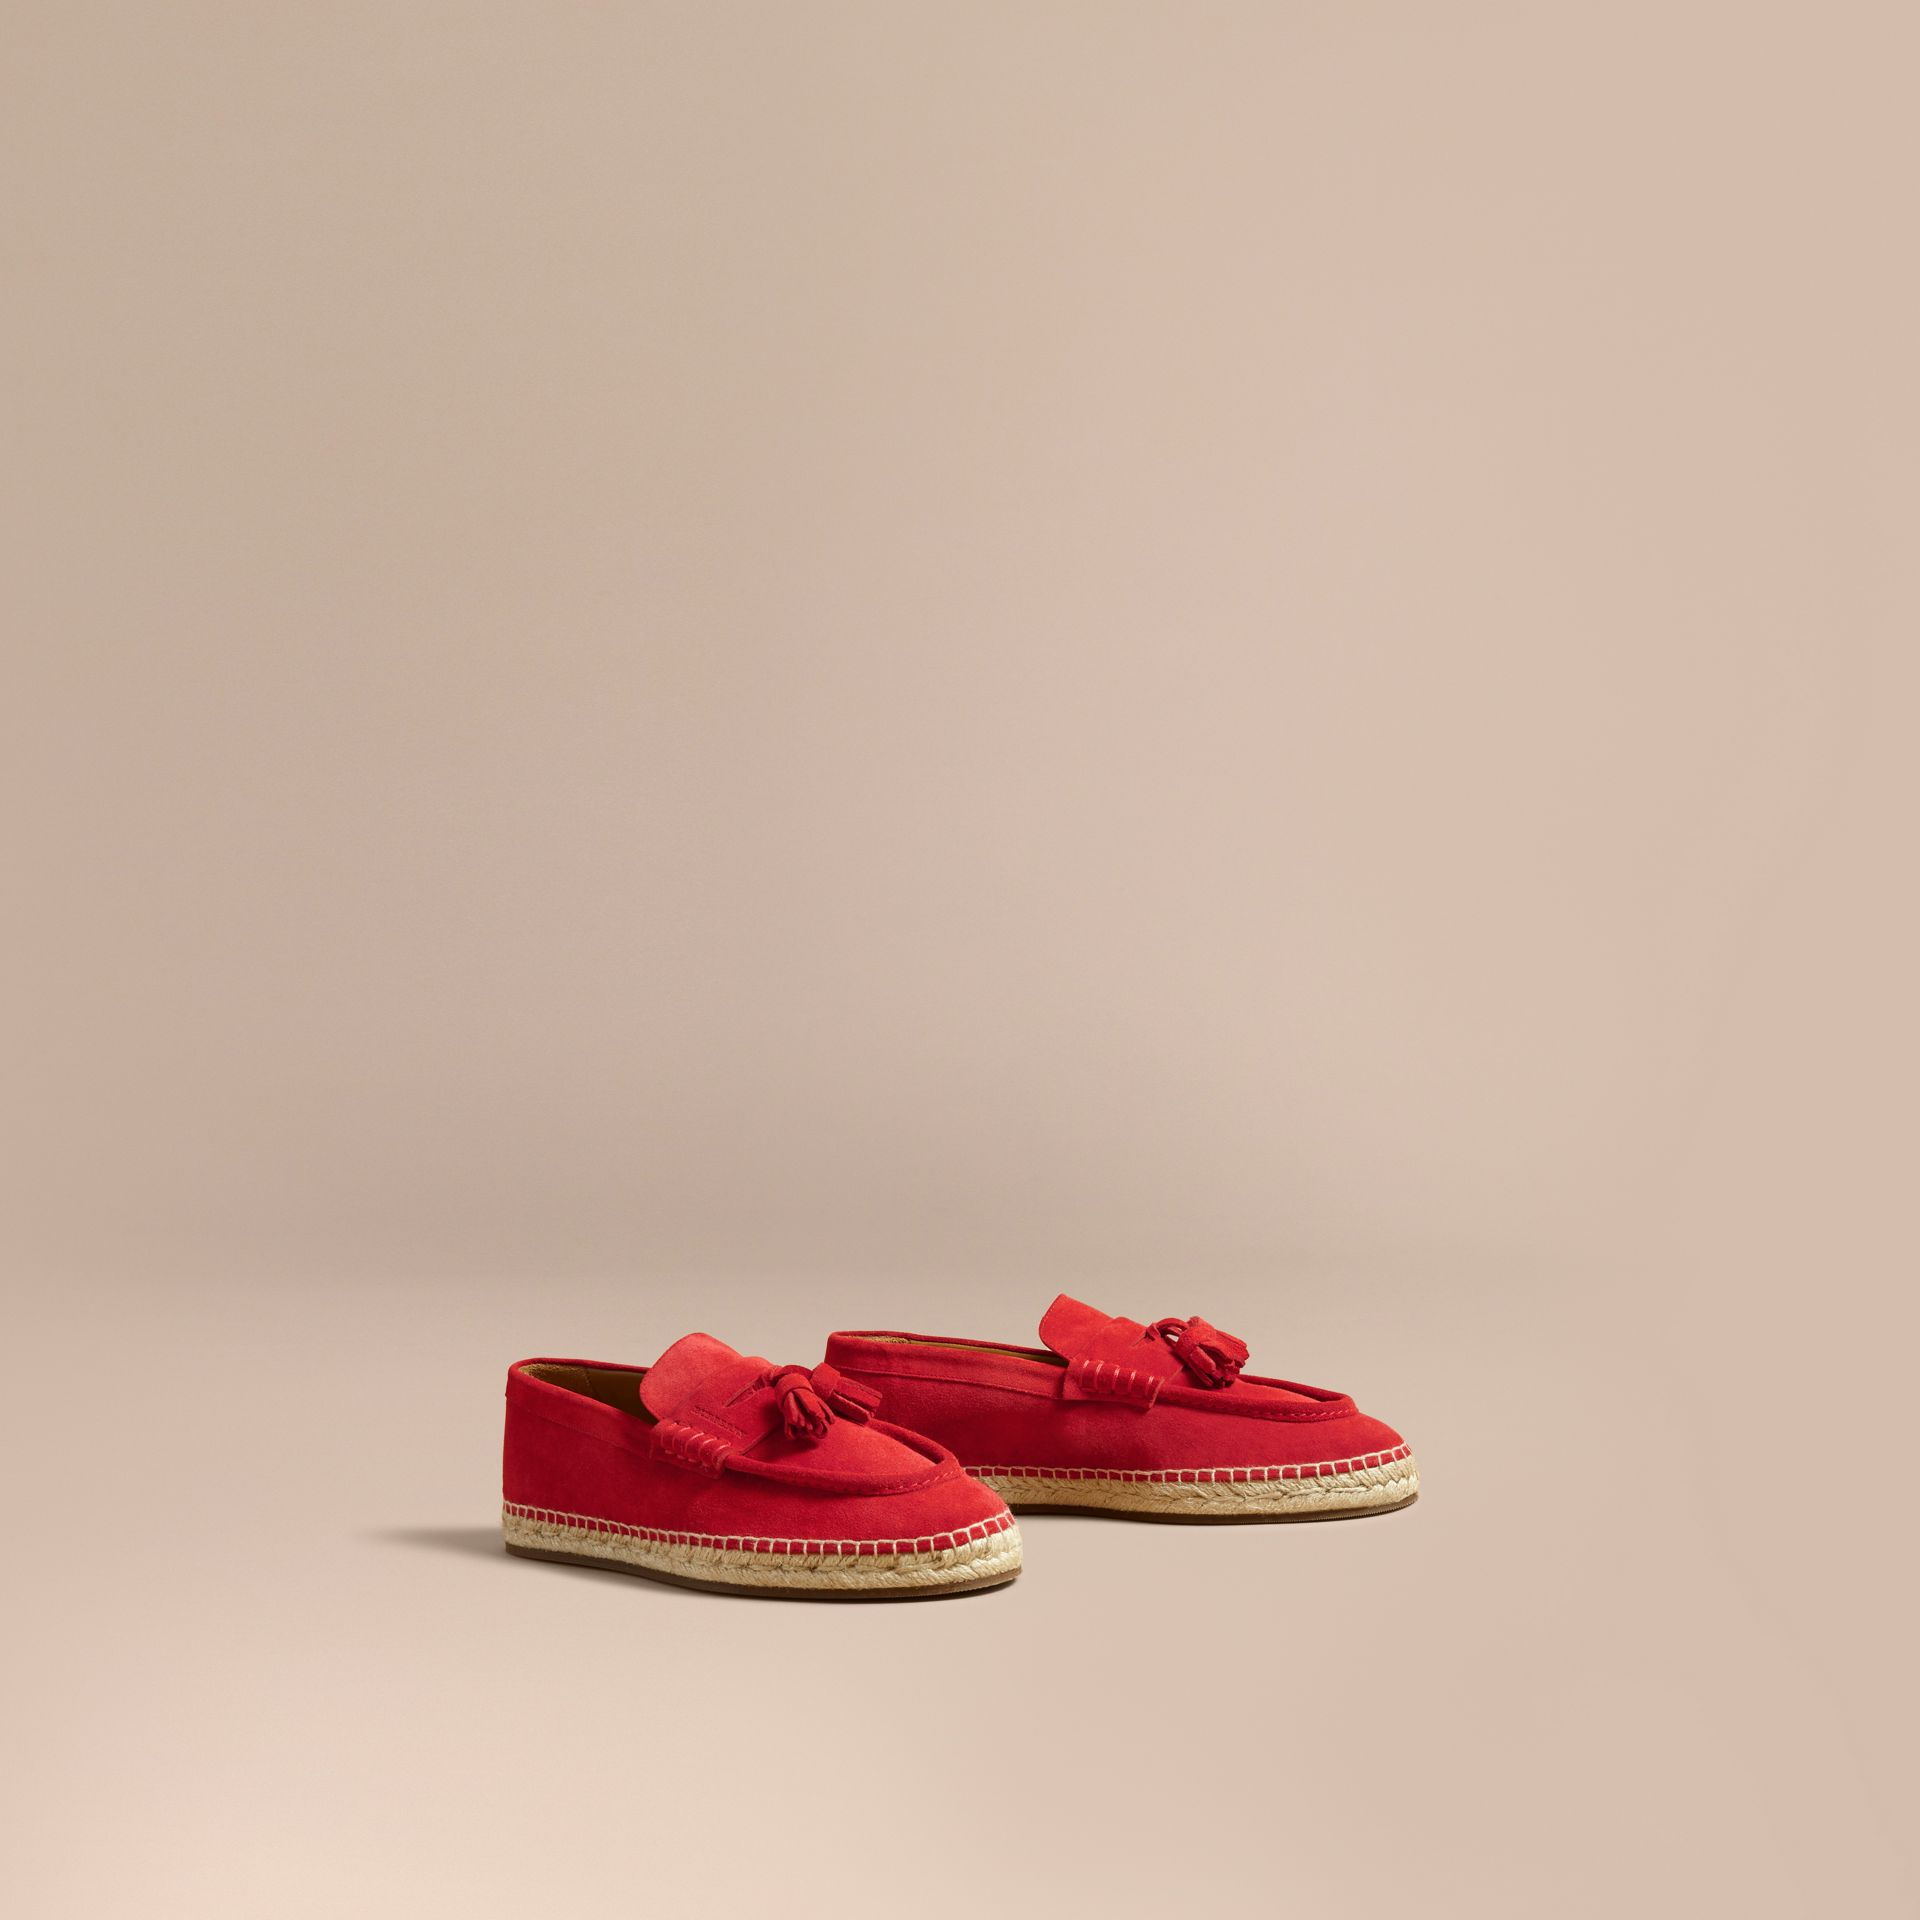 Tasselled Suede Espadrille Loafers in Bright Rowanberry - gallery image 1